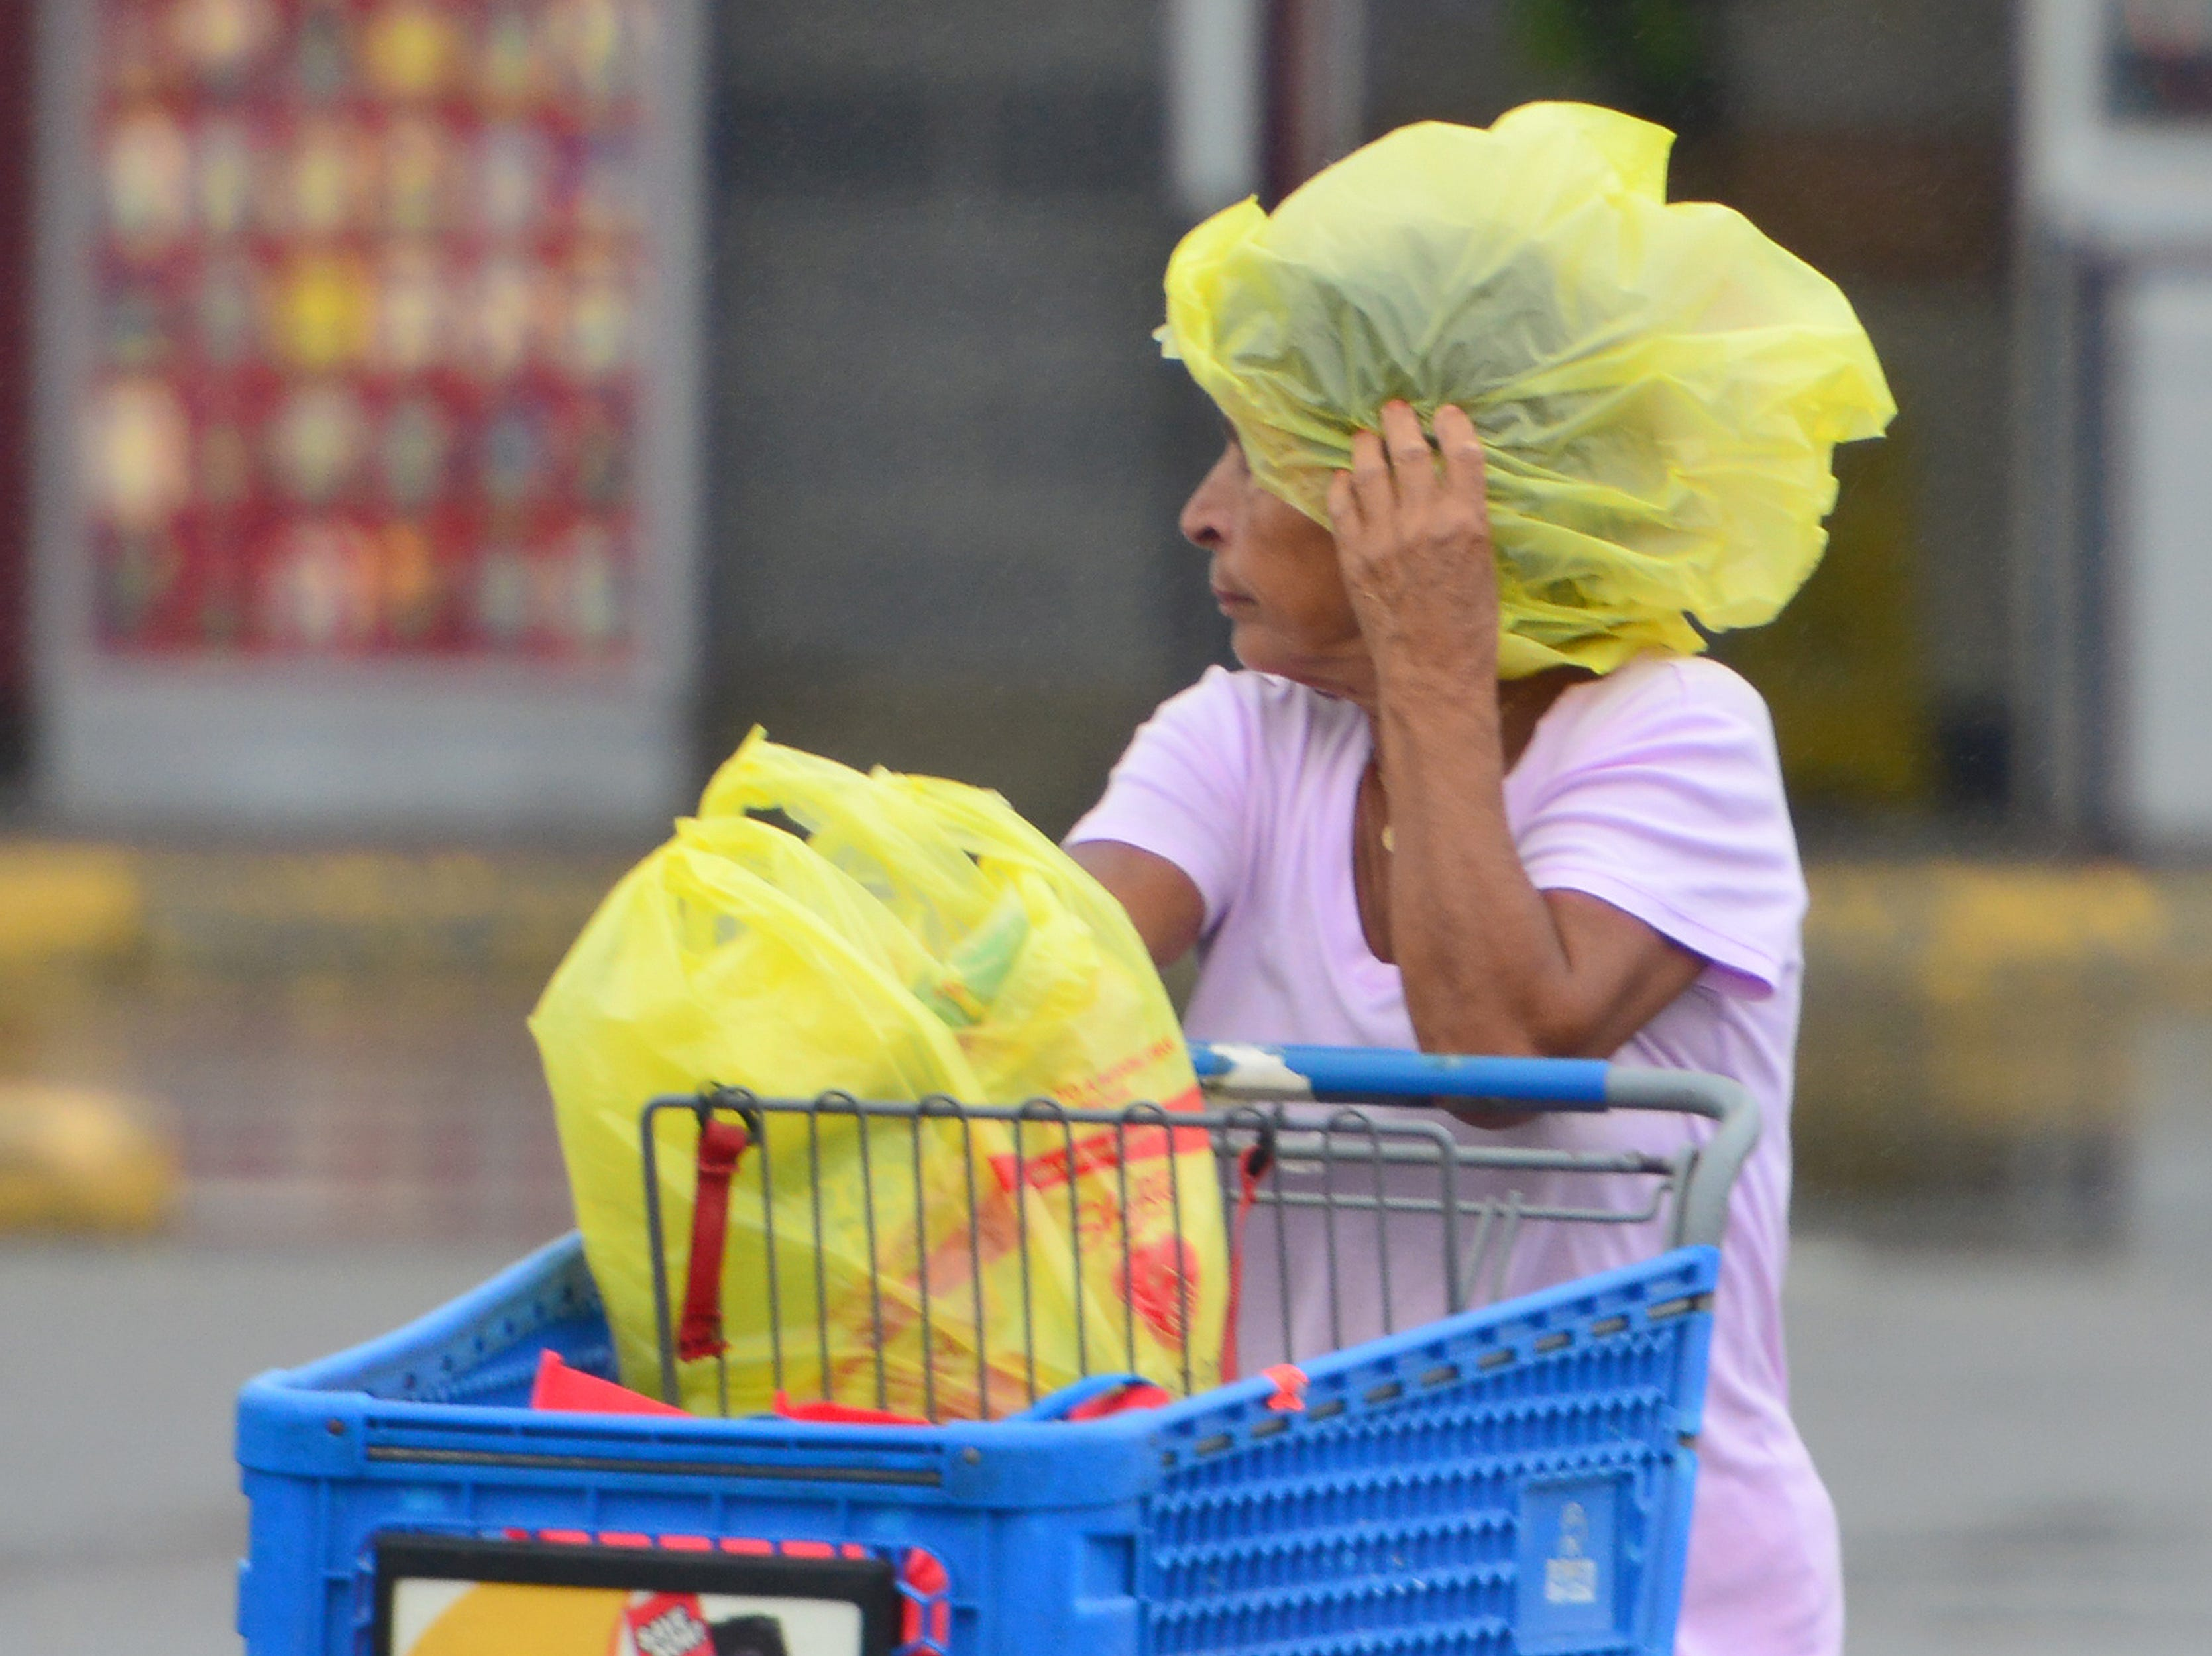 A woman uses a grocery bag to cover her head to shield herself from the rain in Hackensack on Thursday October 11, 2018.